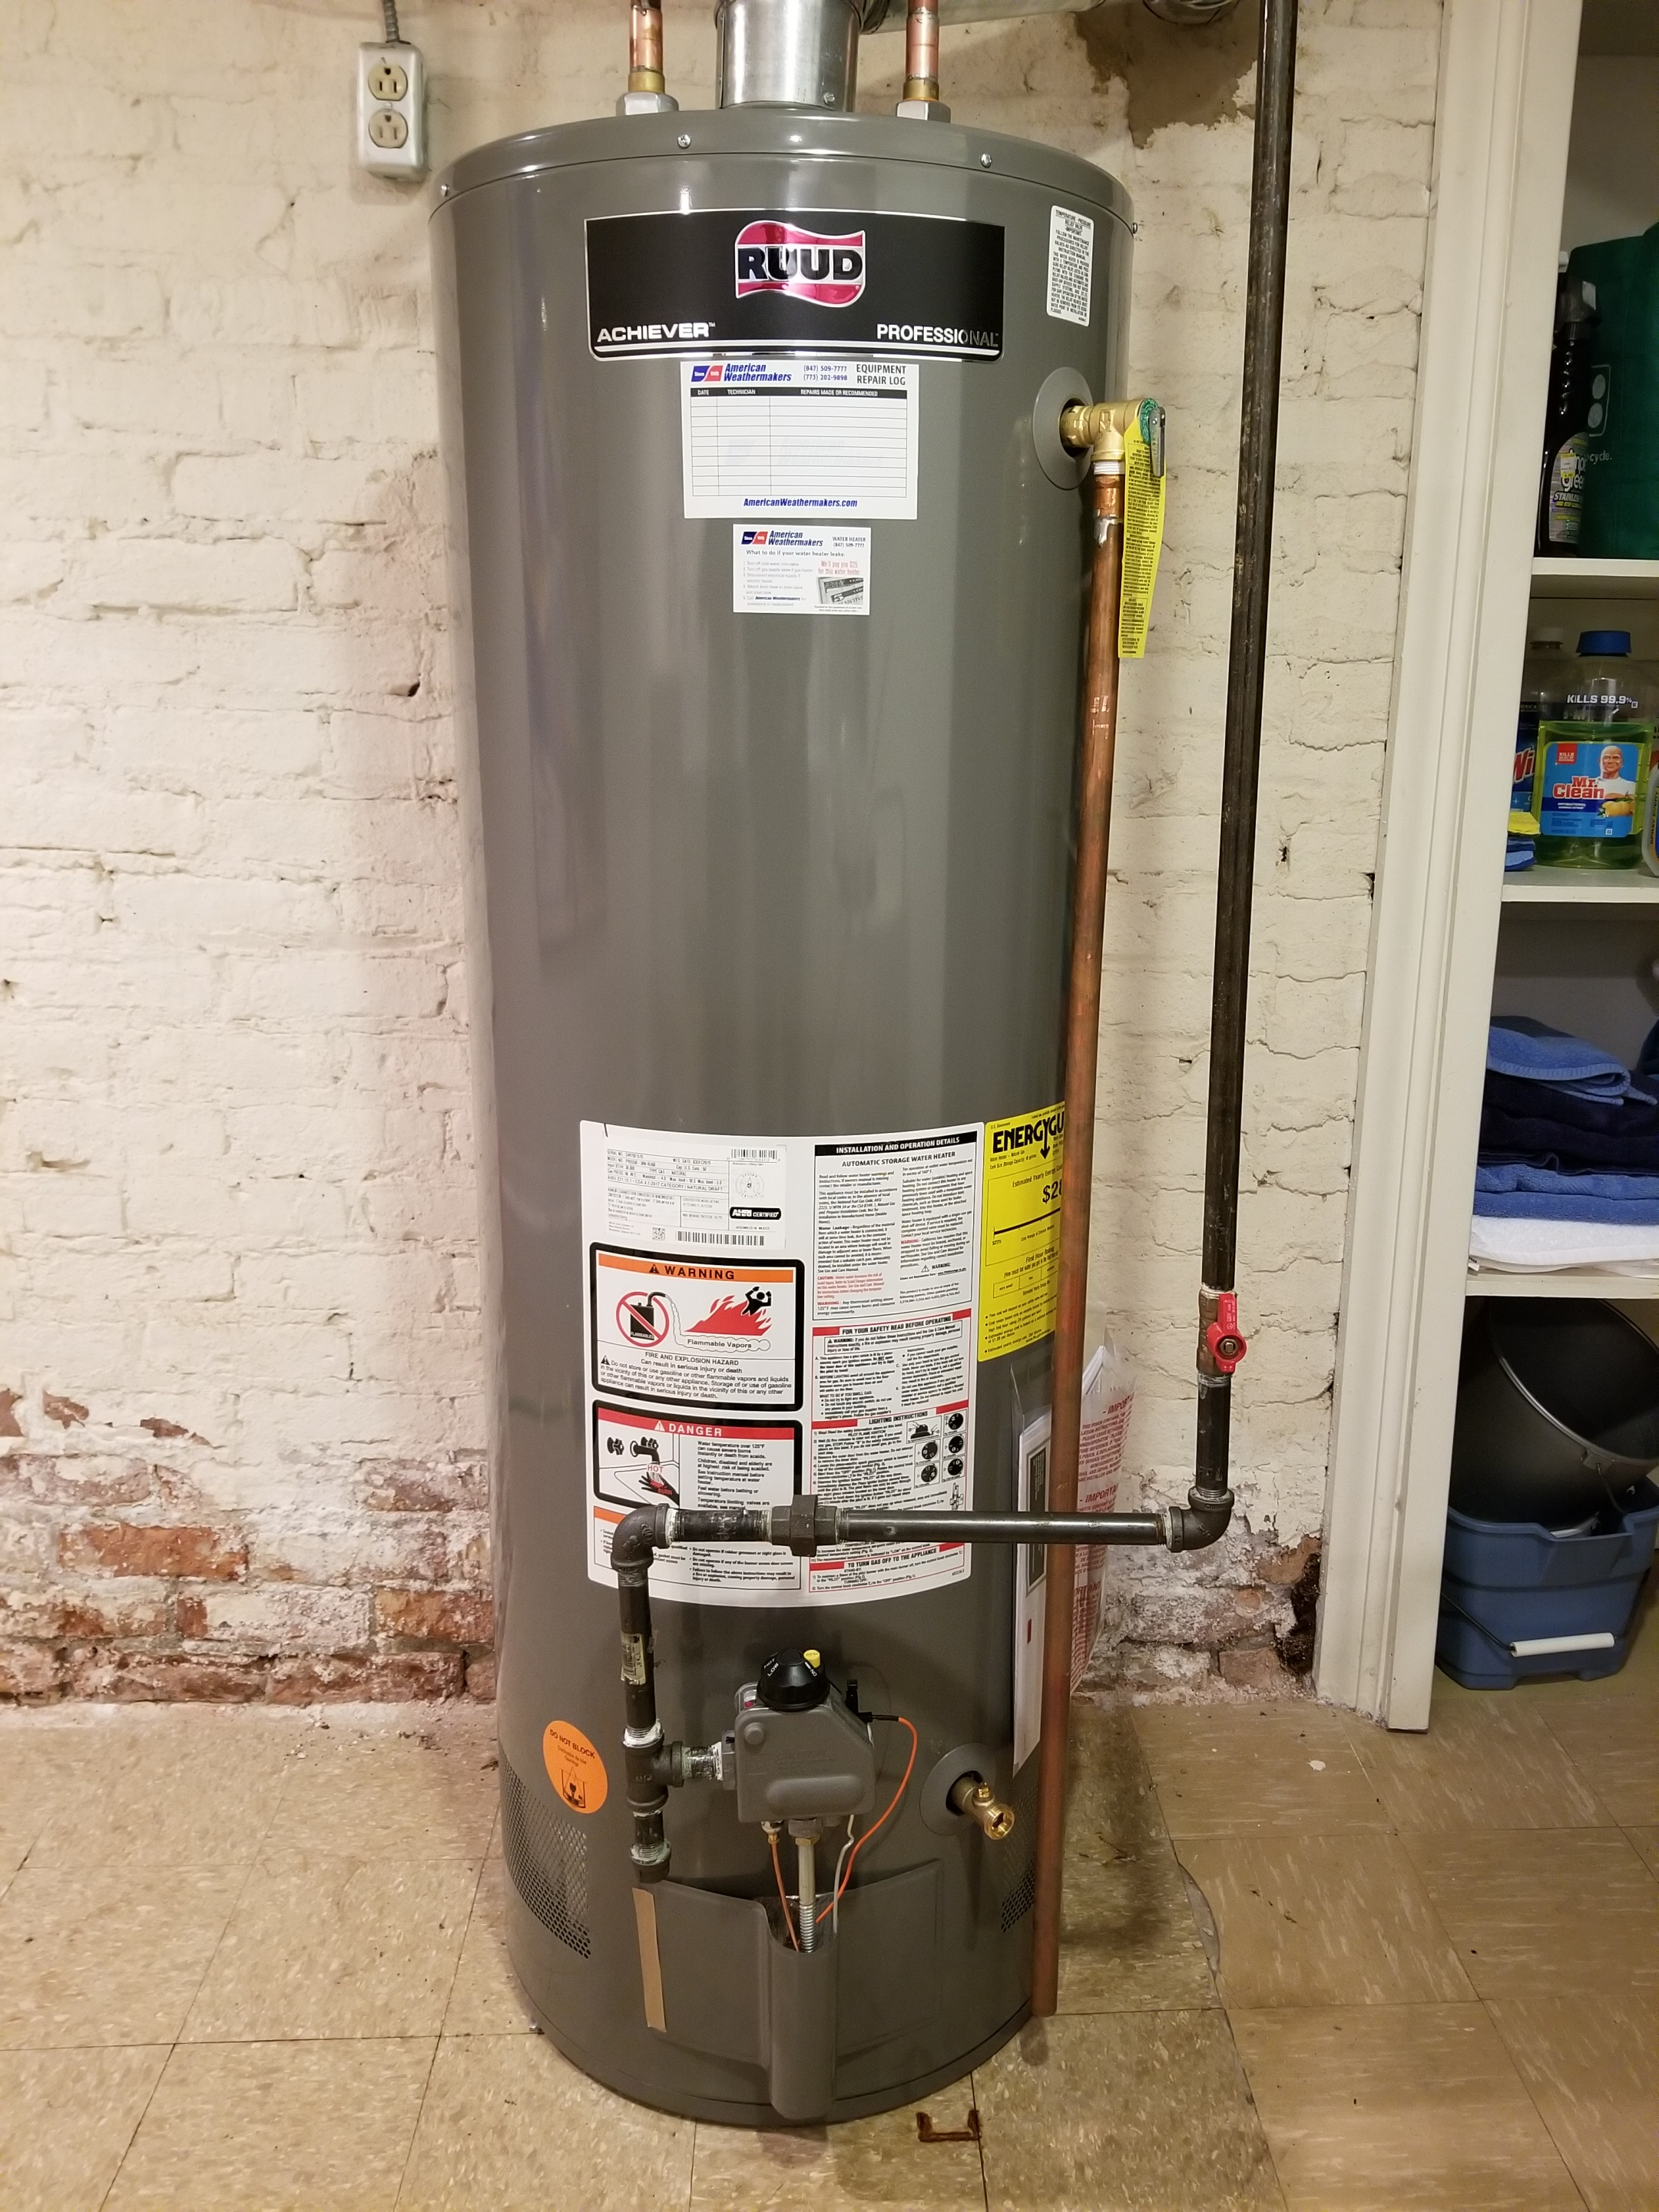 Installed a new more efficient Ruud water heater.